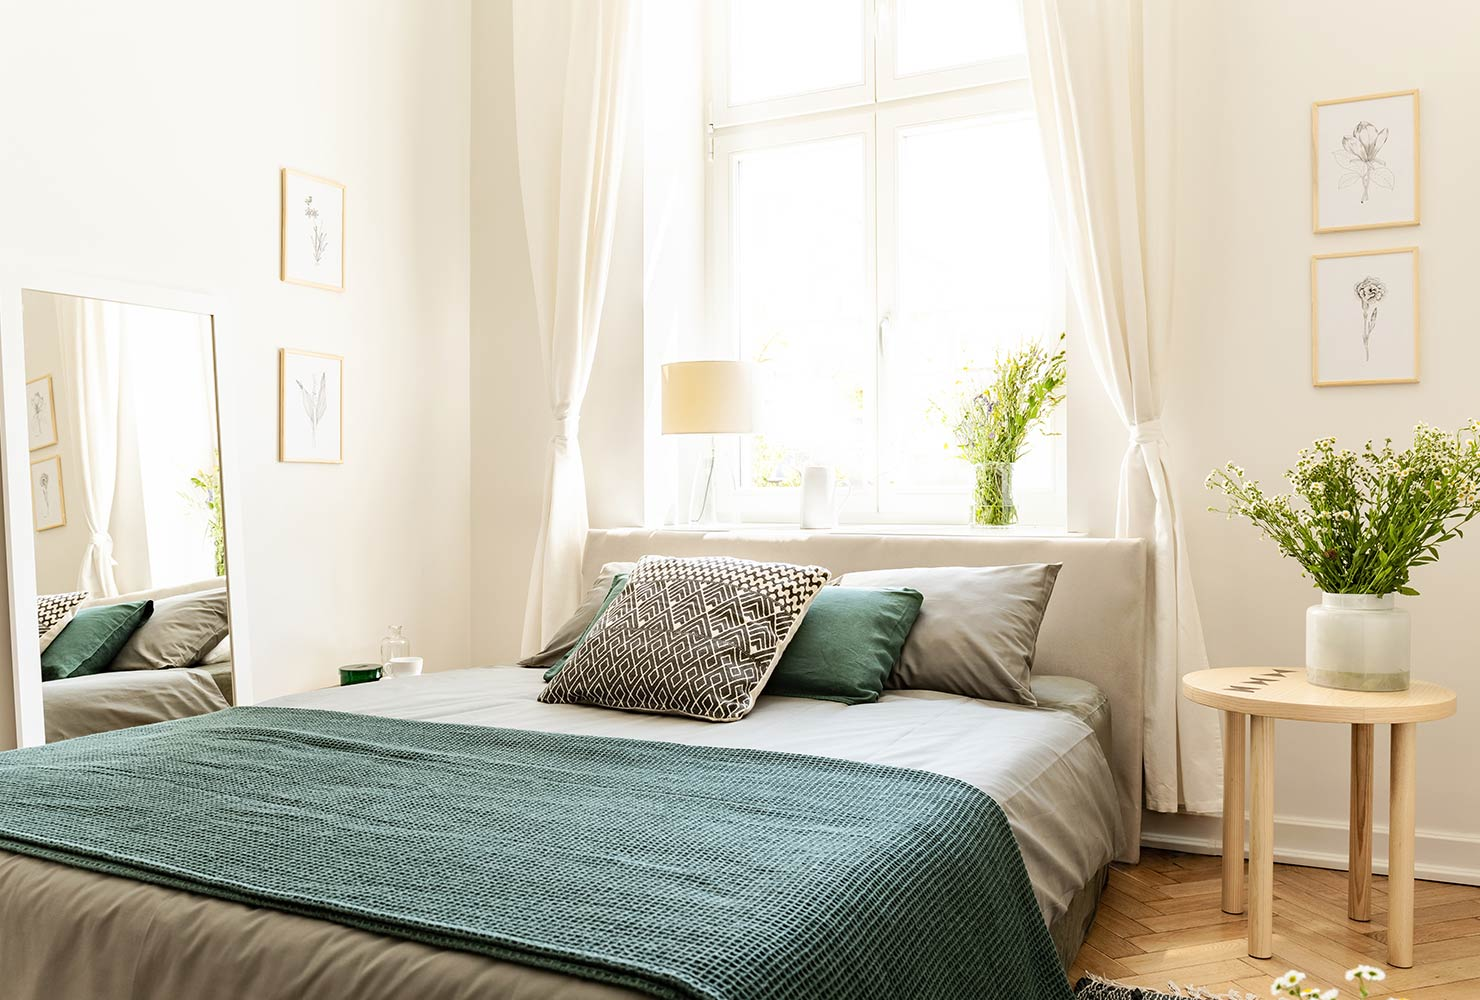 Tan colored bedroom with green bed and plant.